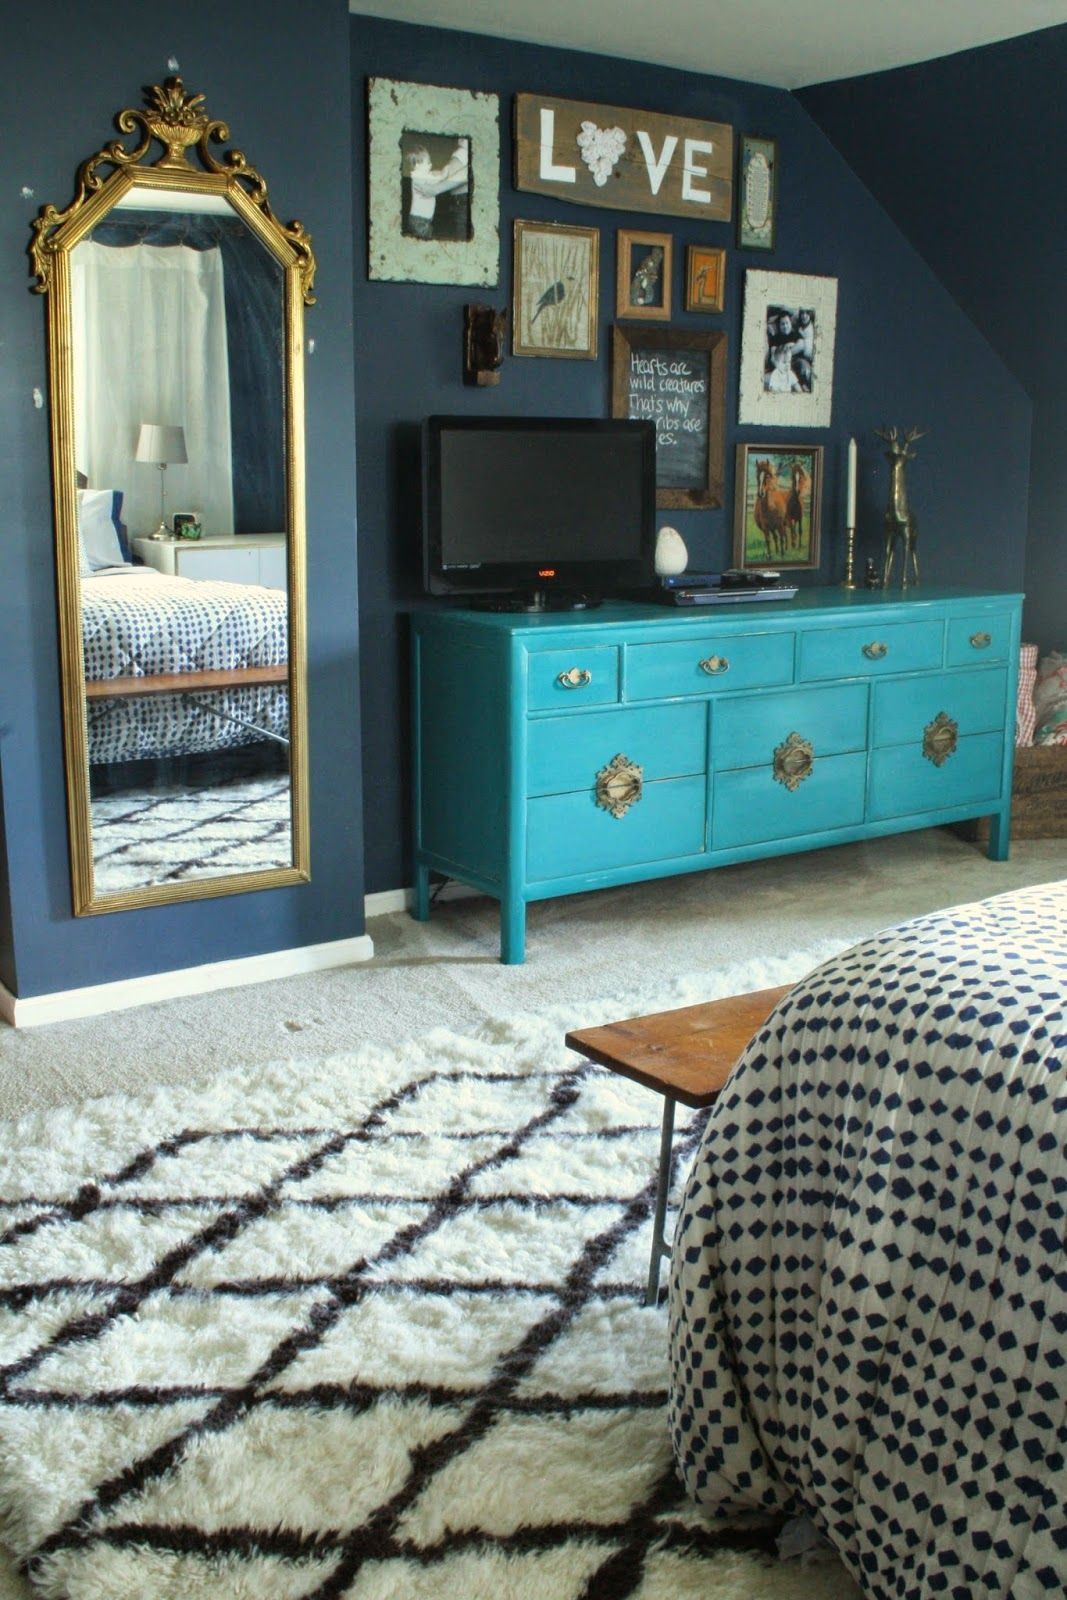 Pin by Jennie Brown on Josie\'s Room in 2019 | Home bedroom ...